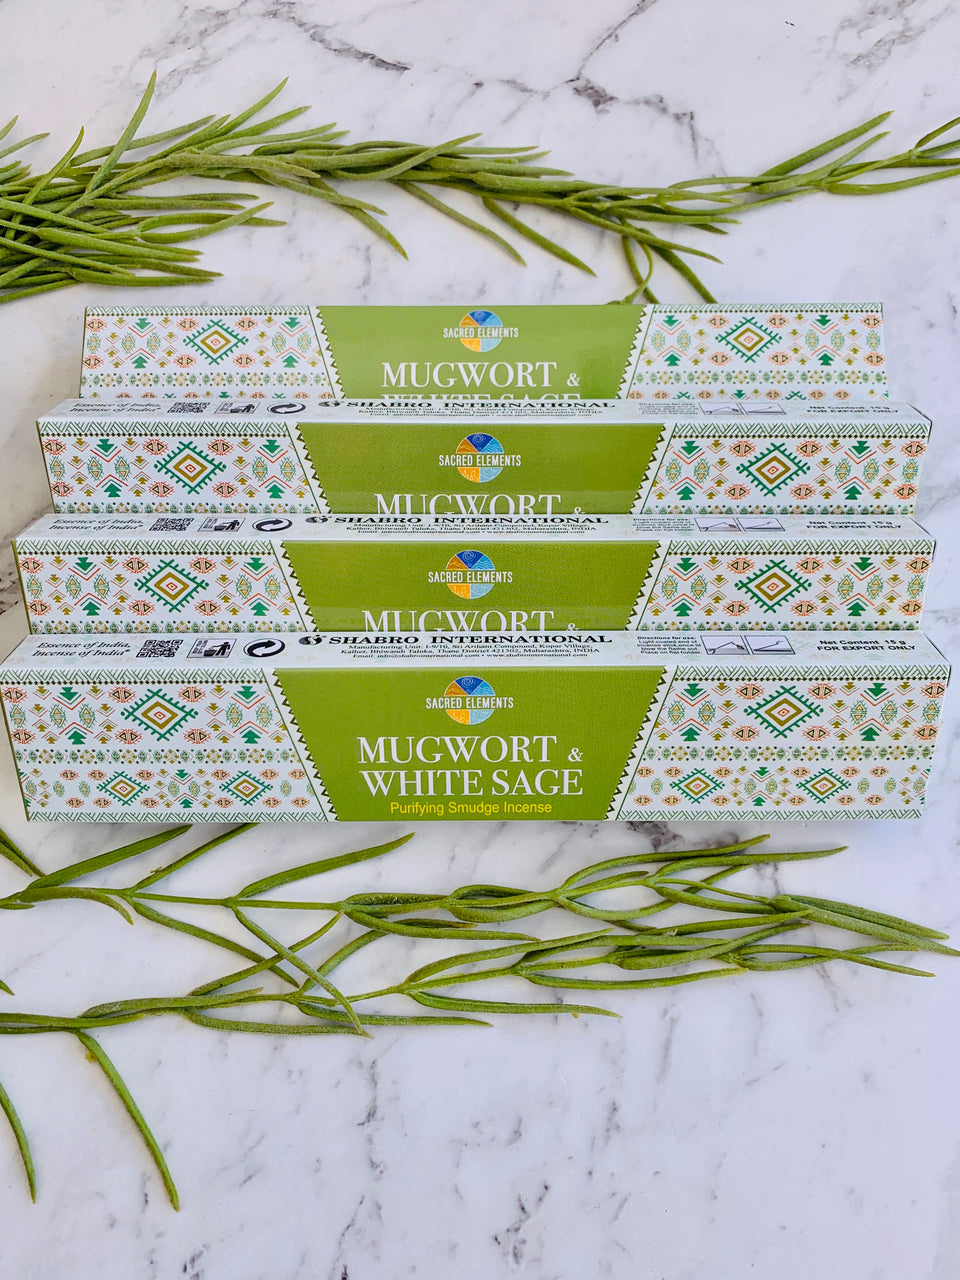 Sacred Elements Mugwort & White Sage Incense Sticks